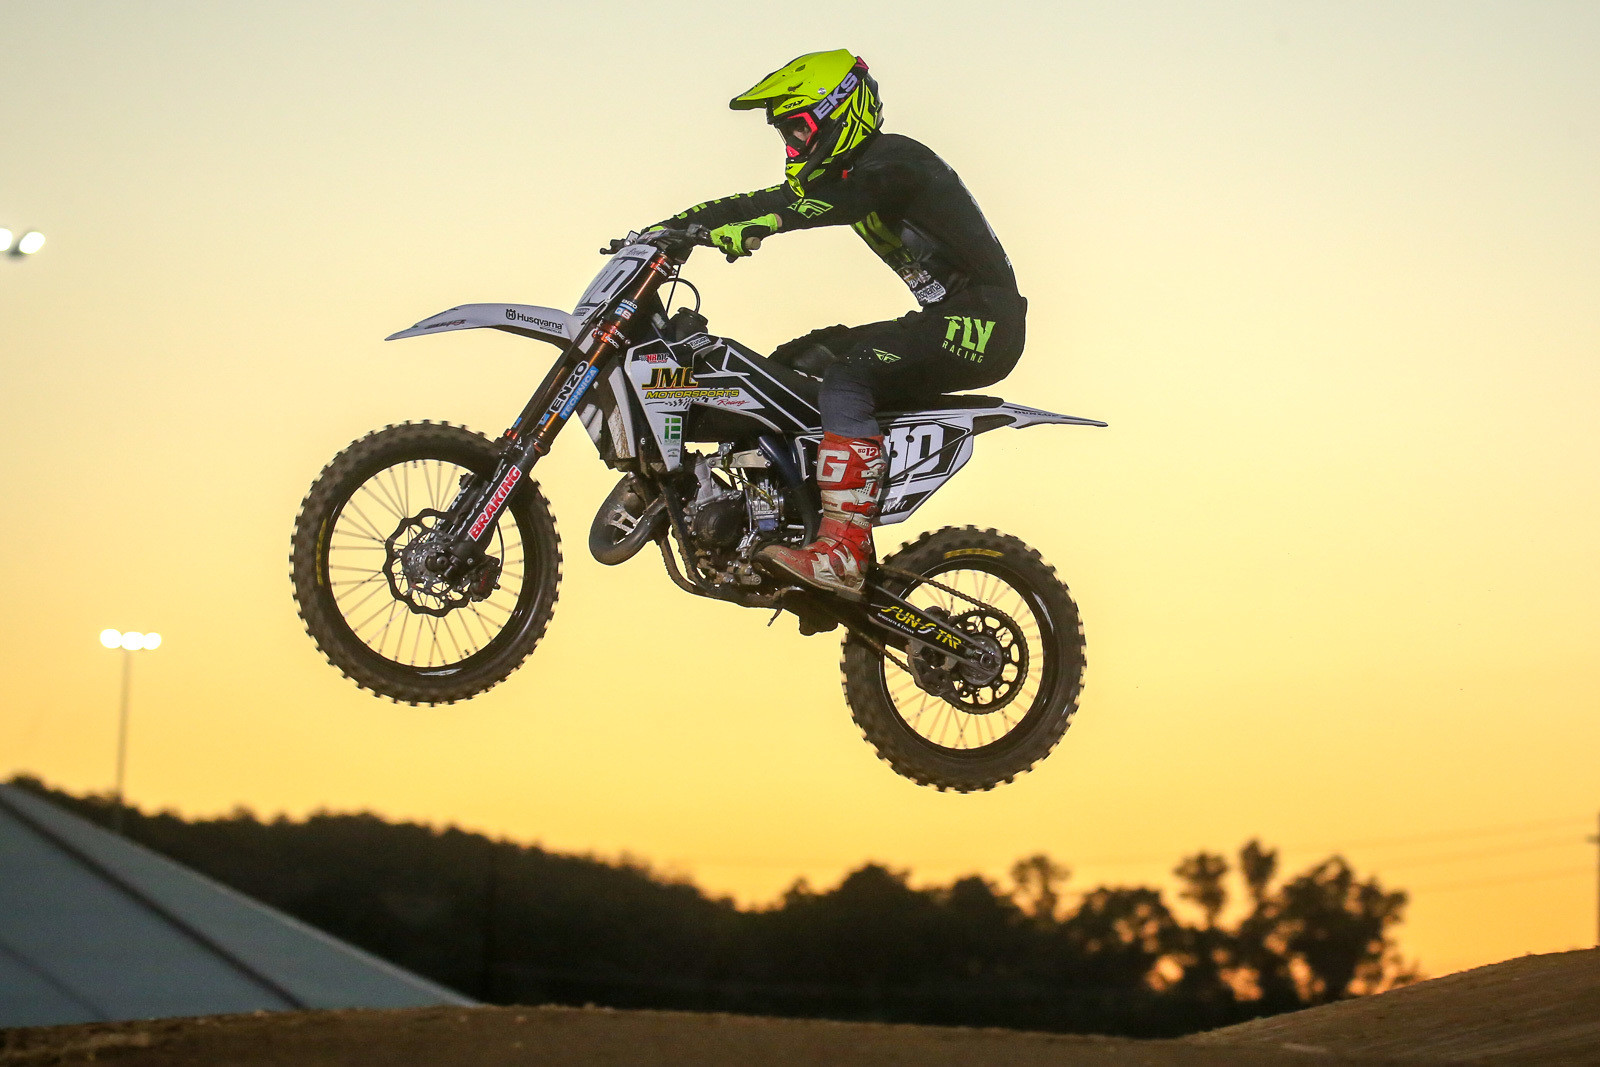 There was both 125 and 250 class action on tap, and Carson Brown nabbed the win in the 125 class.